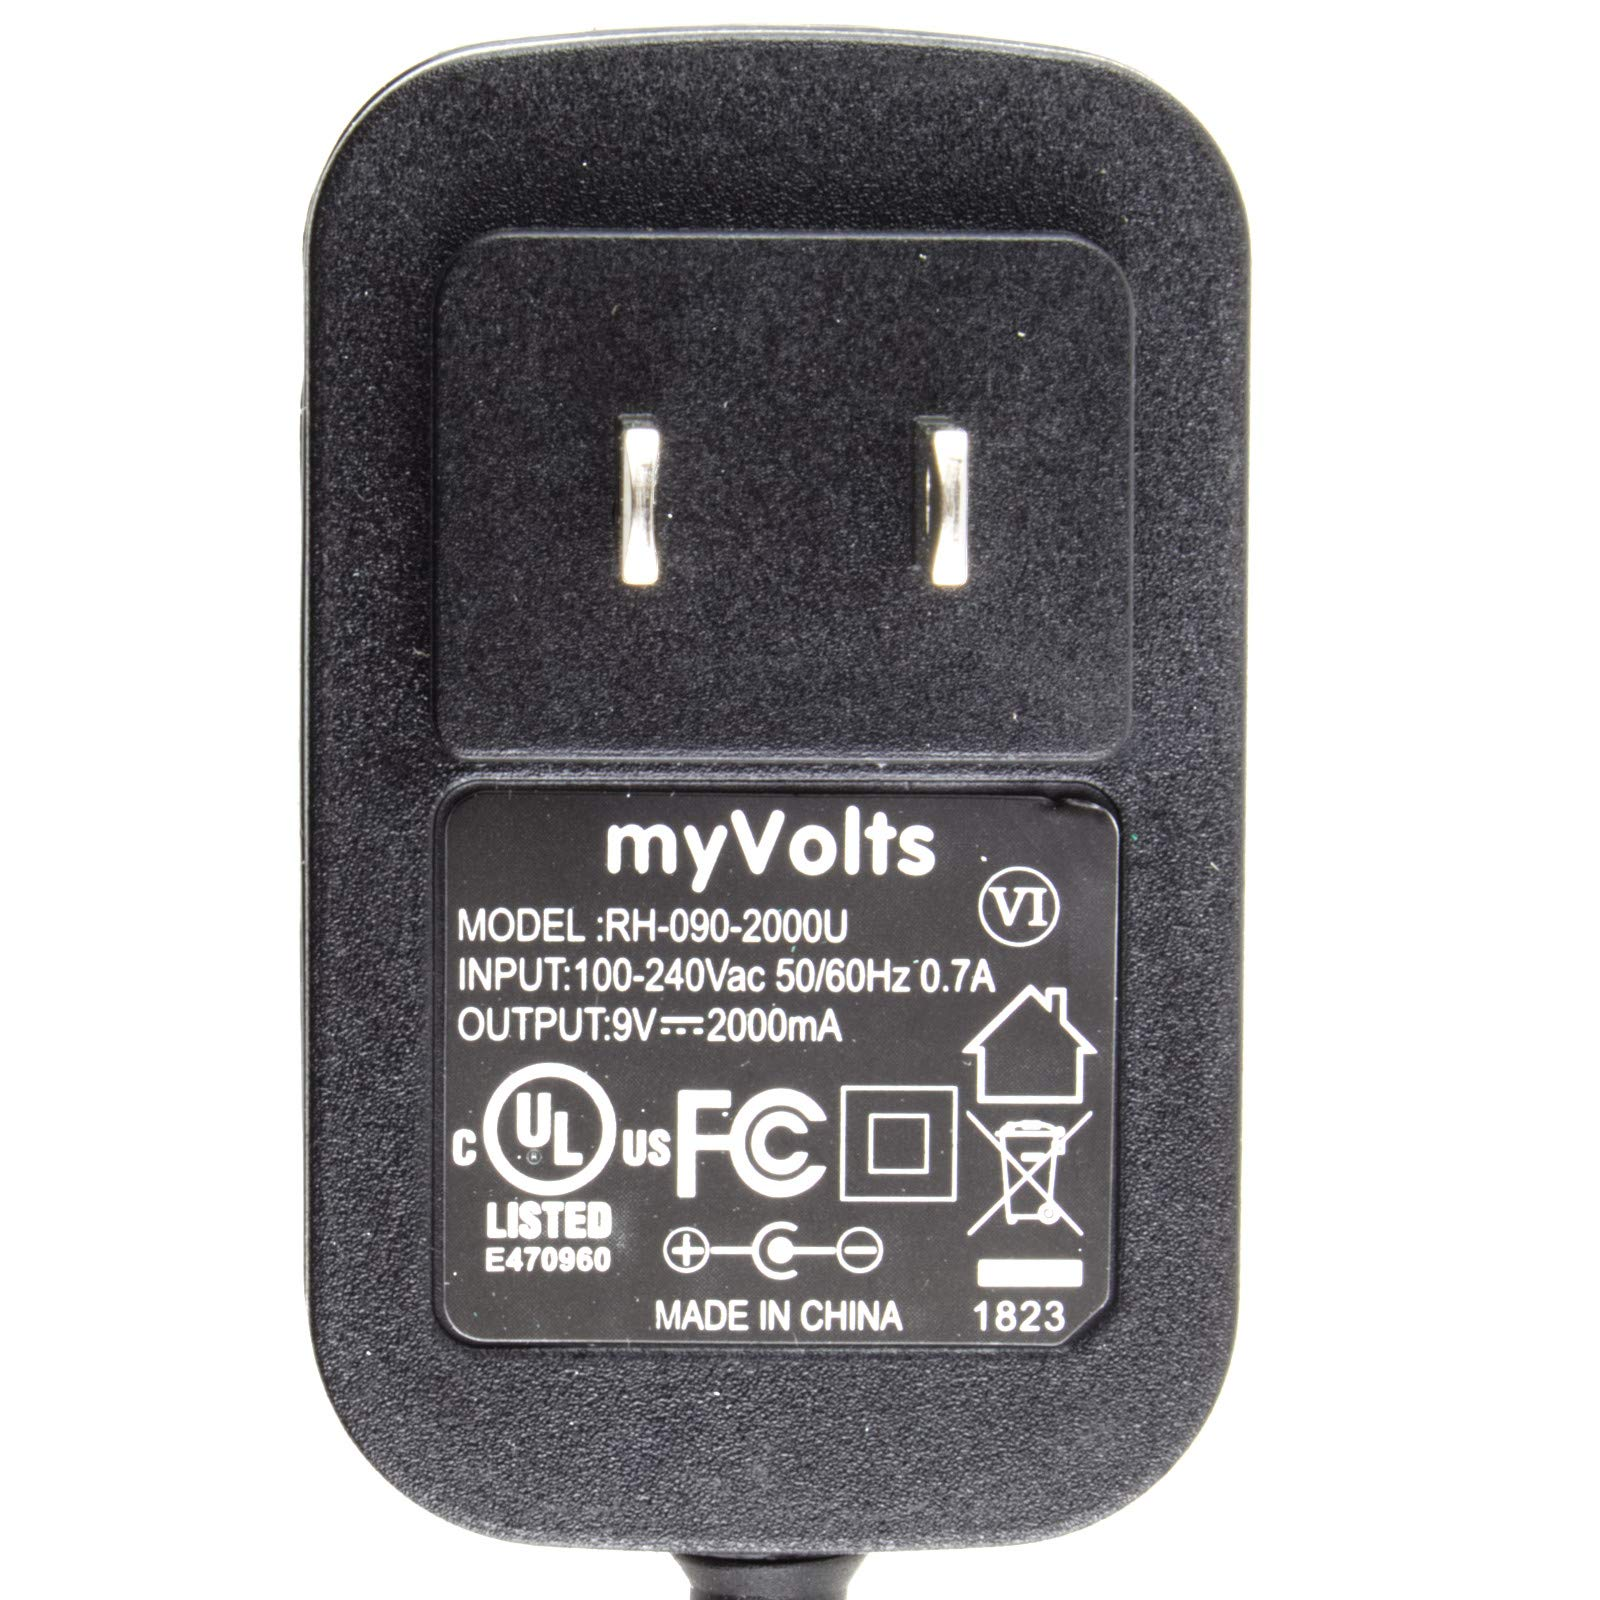 MyVolts 9V Power Supply Adaptor Compatible with Brother PT-1280 Label Printer - US Plug by MyVolts (Image #3)